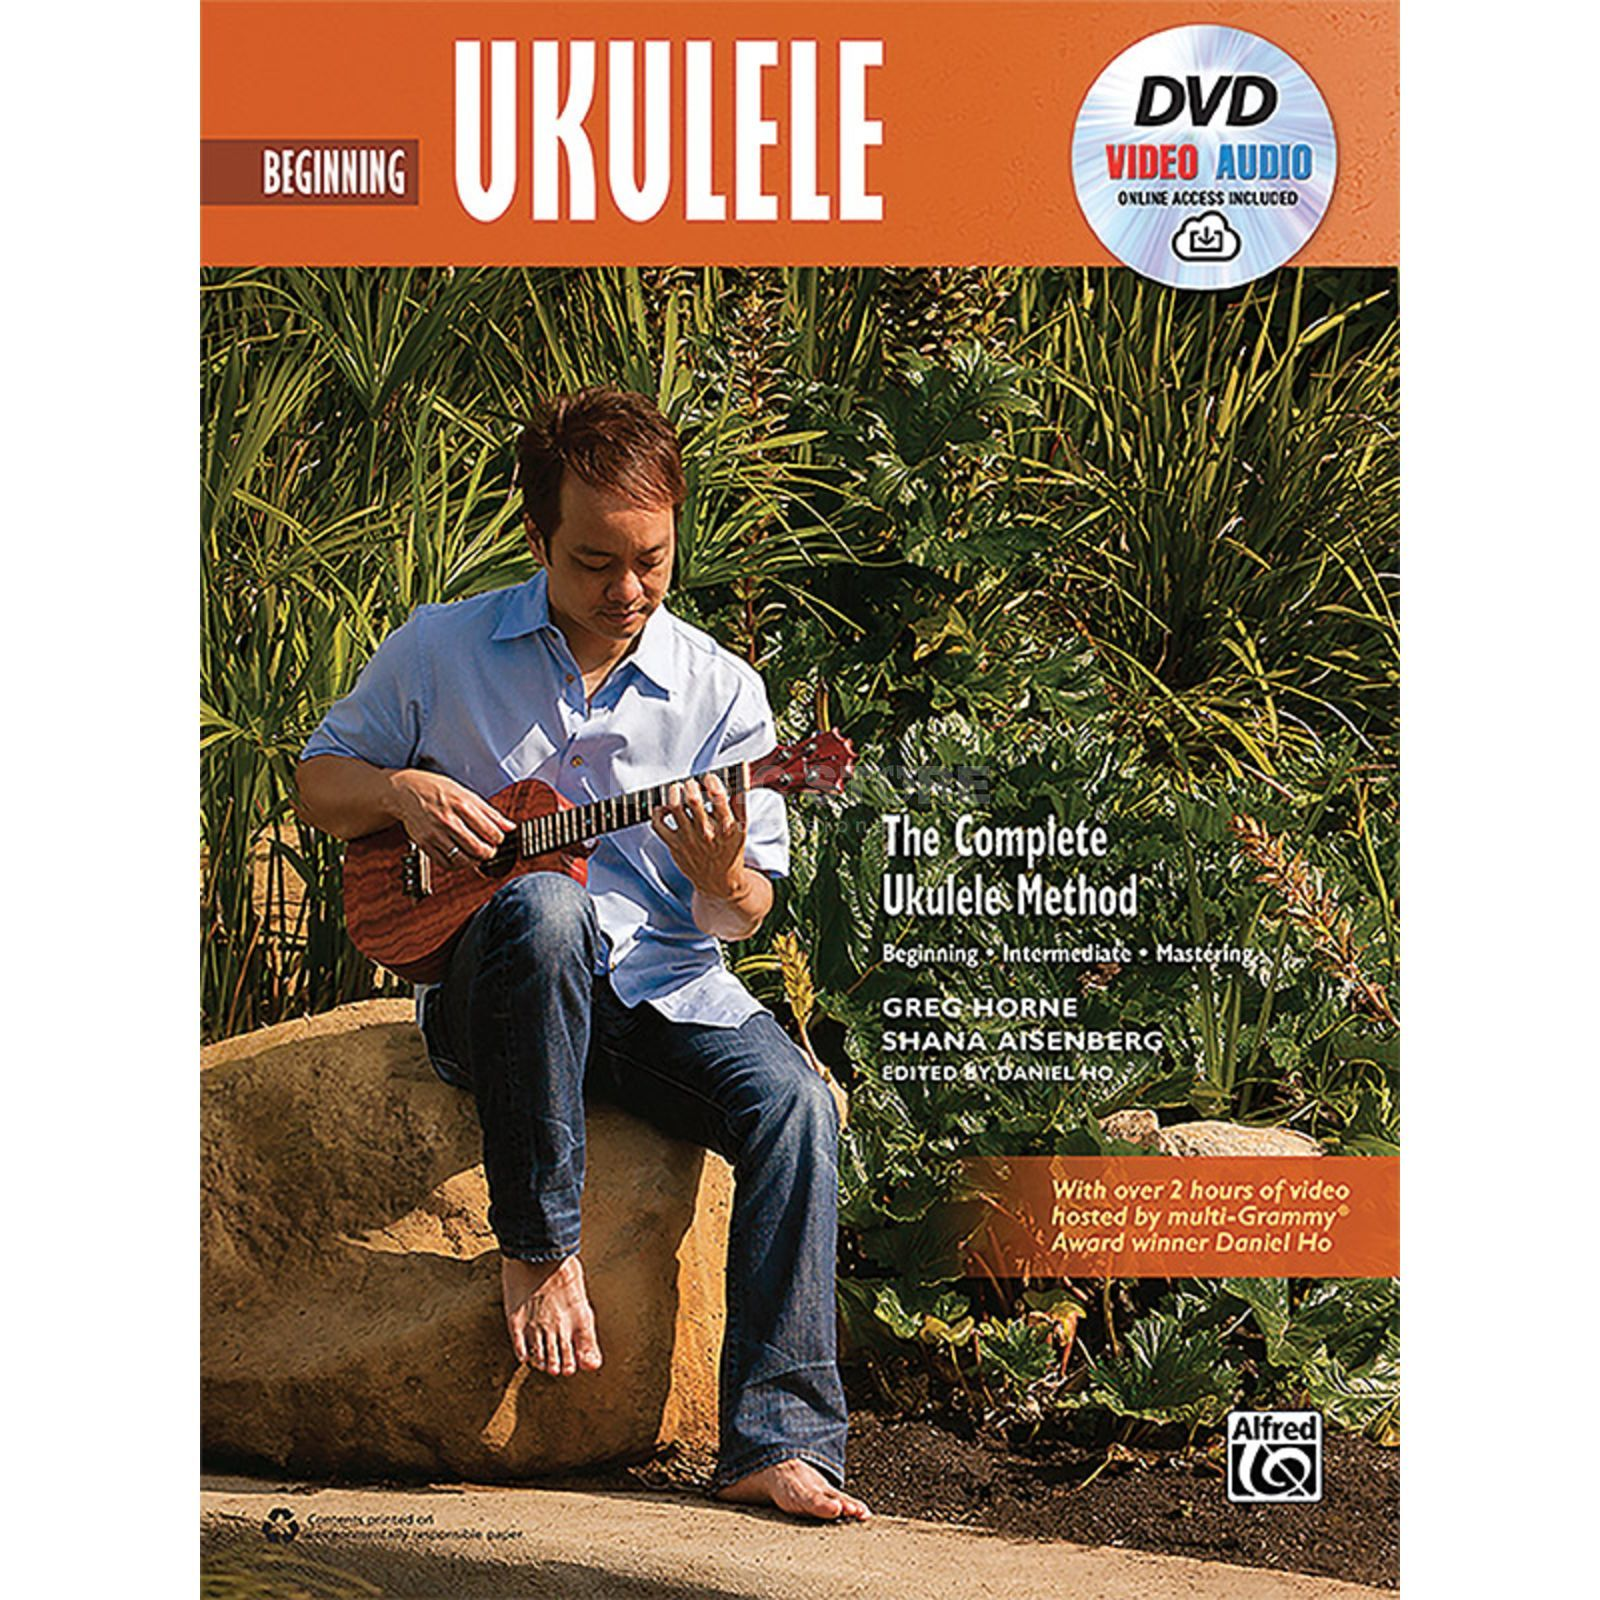 Alfred Music The Complete Ukulele Method: Beginning Ukulele Produktbild